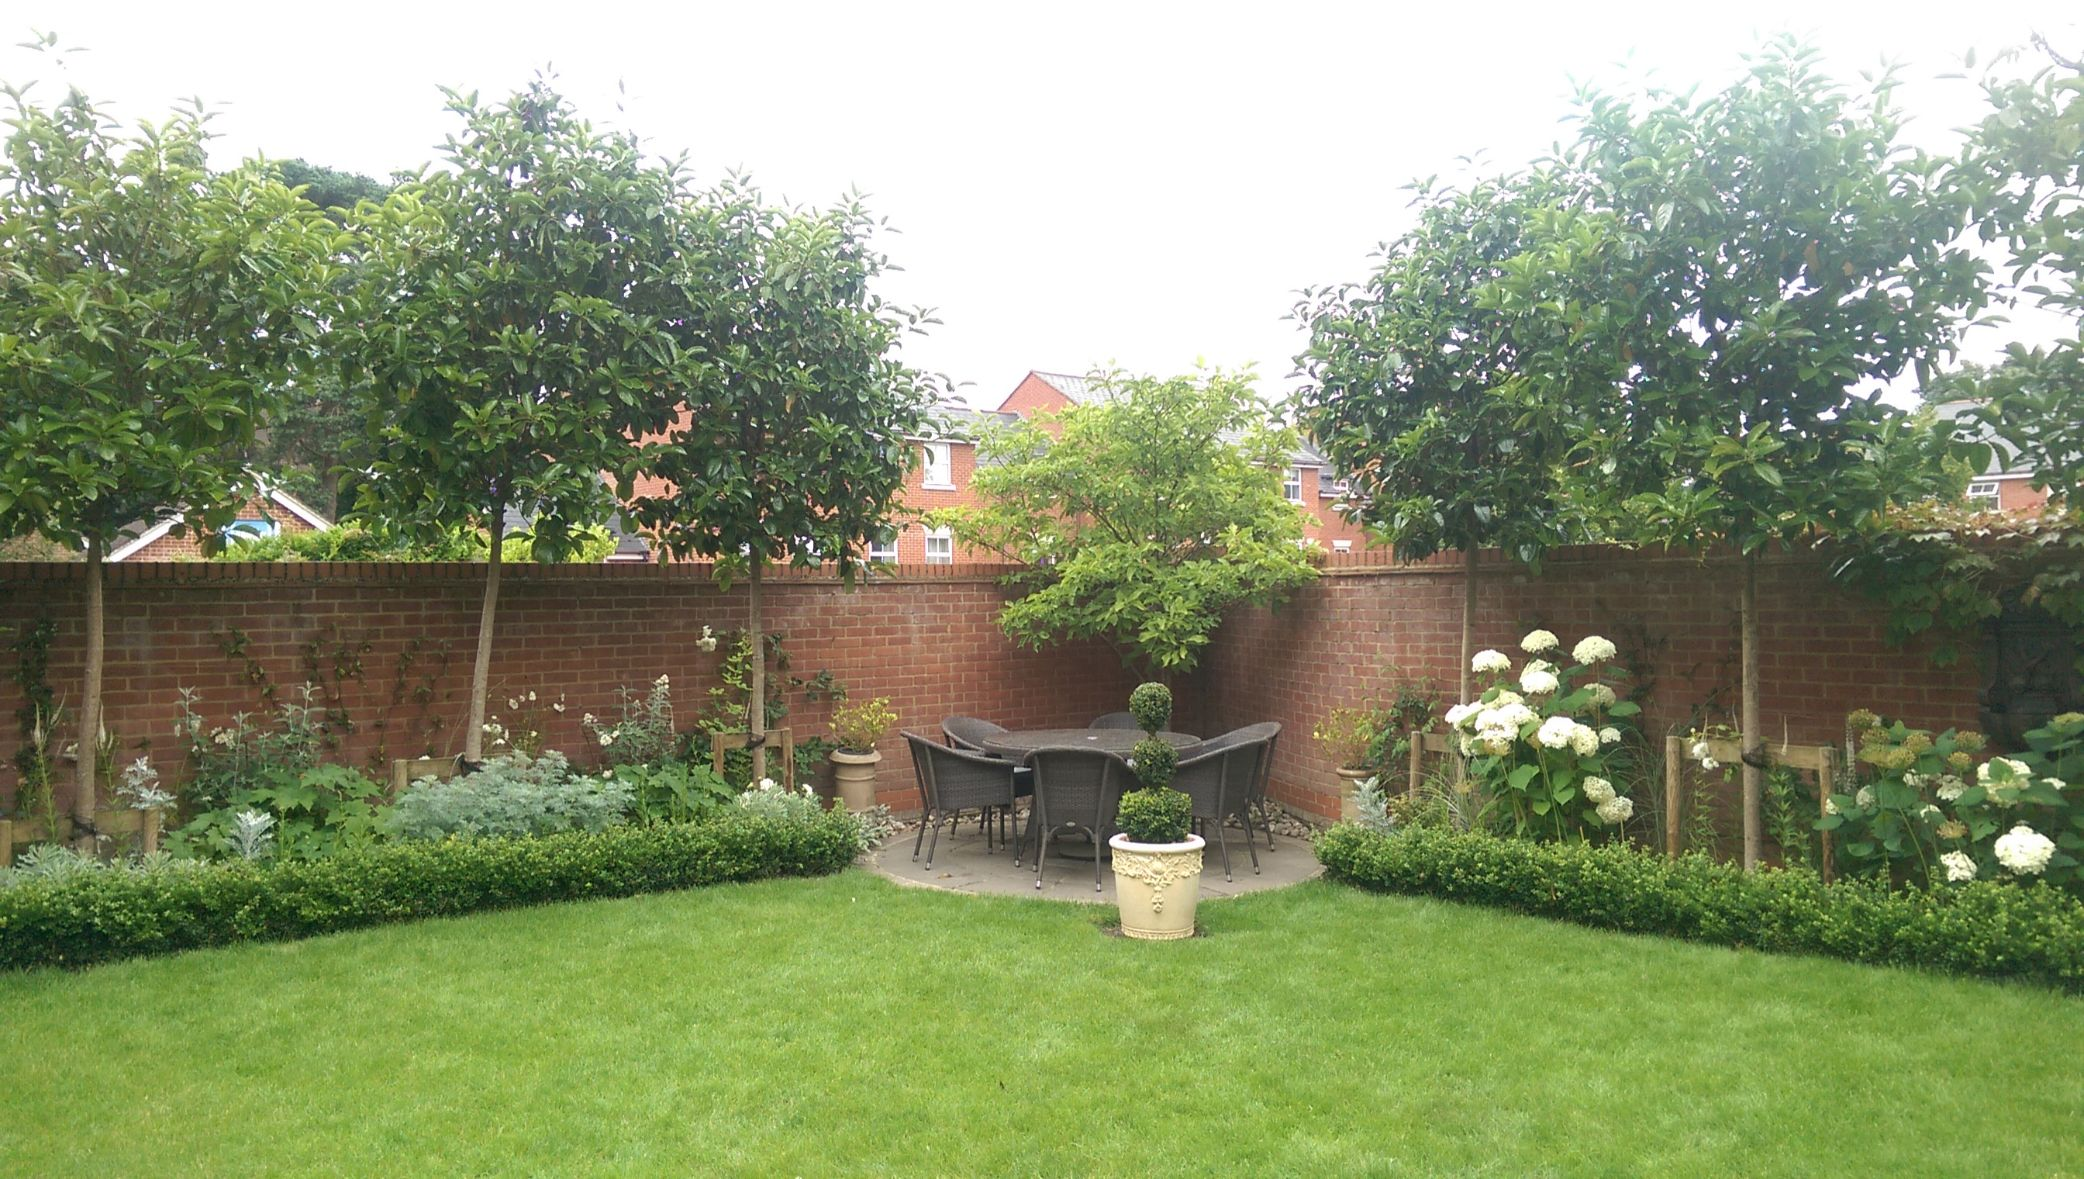 Pleached trees and formal planting